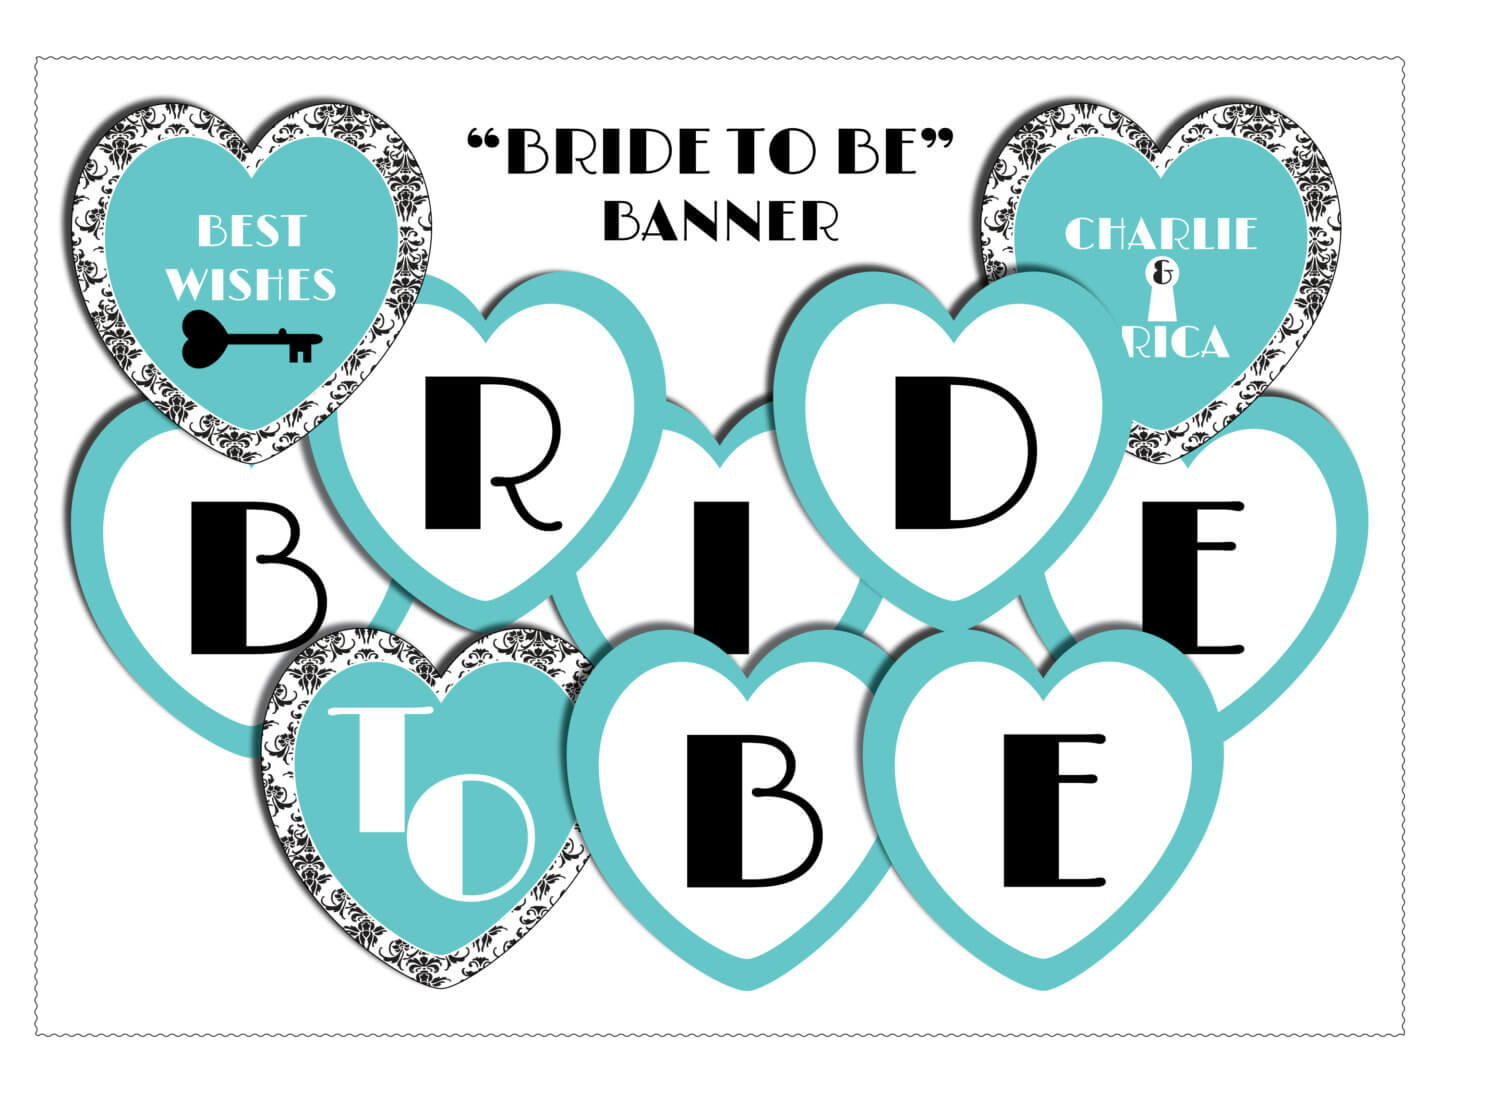 11 Best Photos Of Bride To Be Banner Template - Diy Bridal Regarding Bridal Shower Banner Template